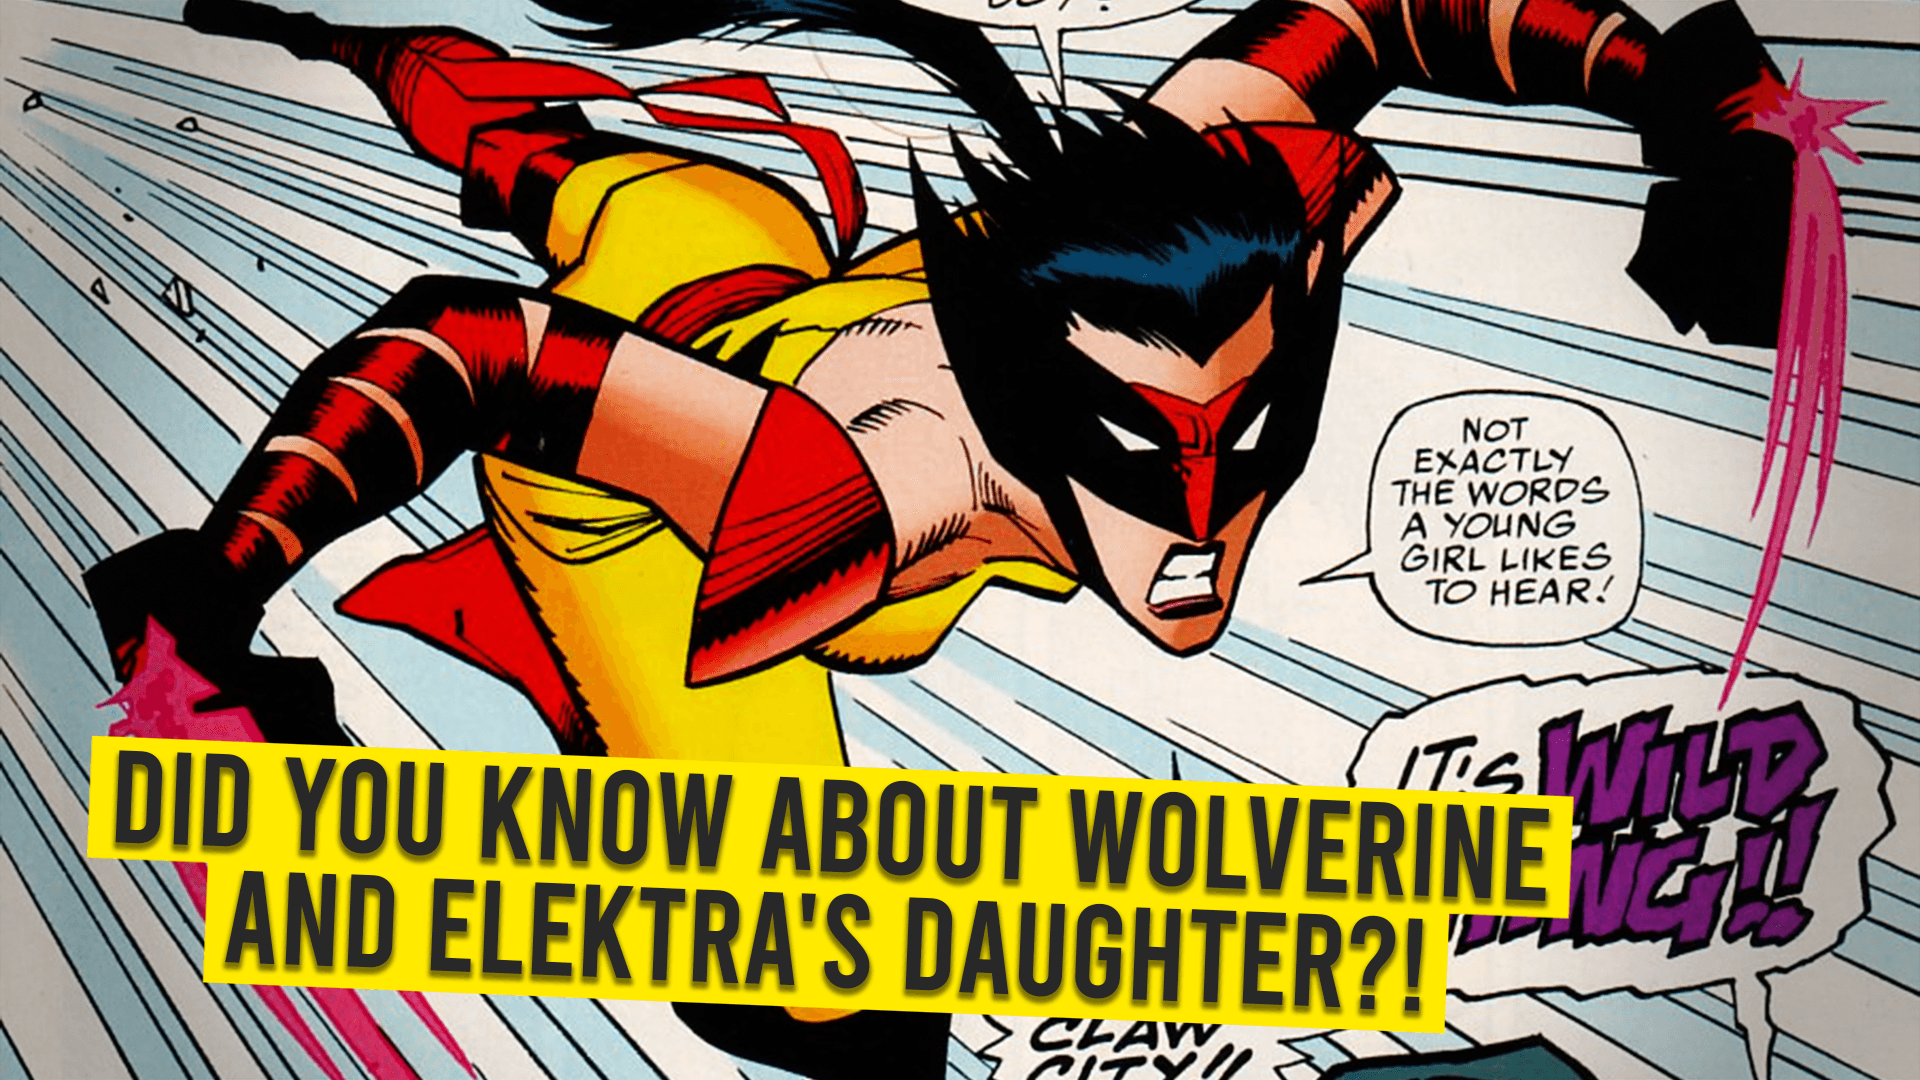 Wolverine's Daughter